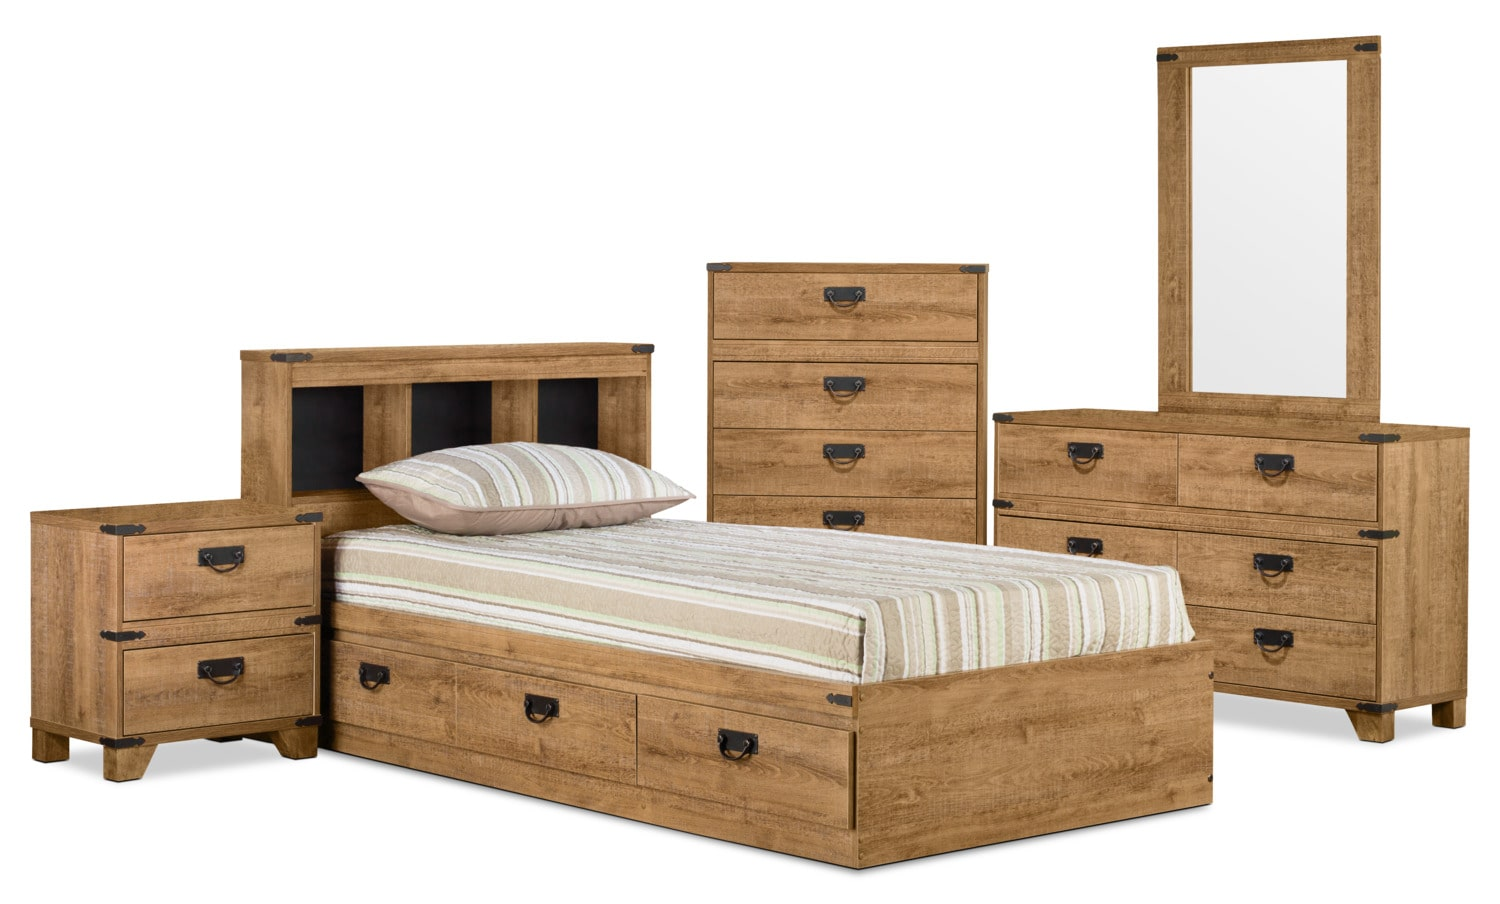 Driftwood Mates 7-Piece Full Bedroom Package